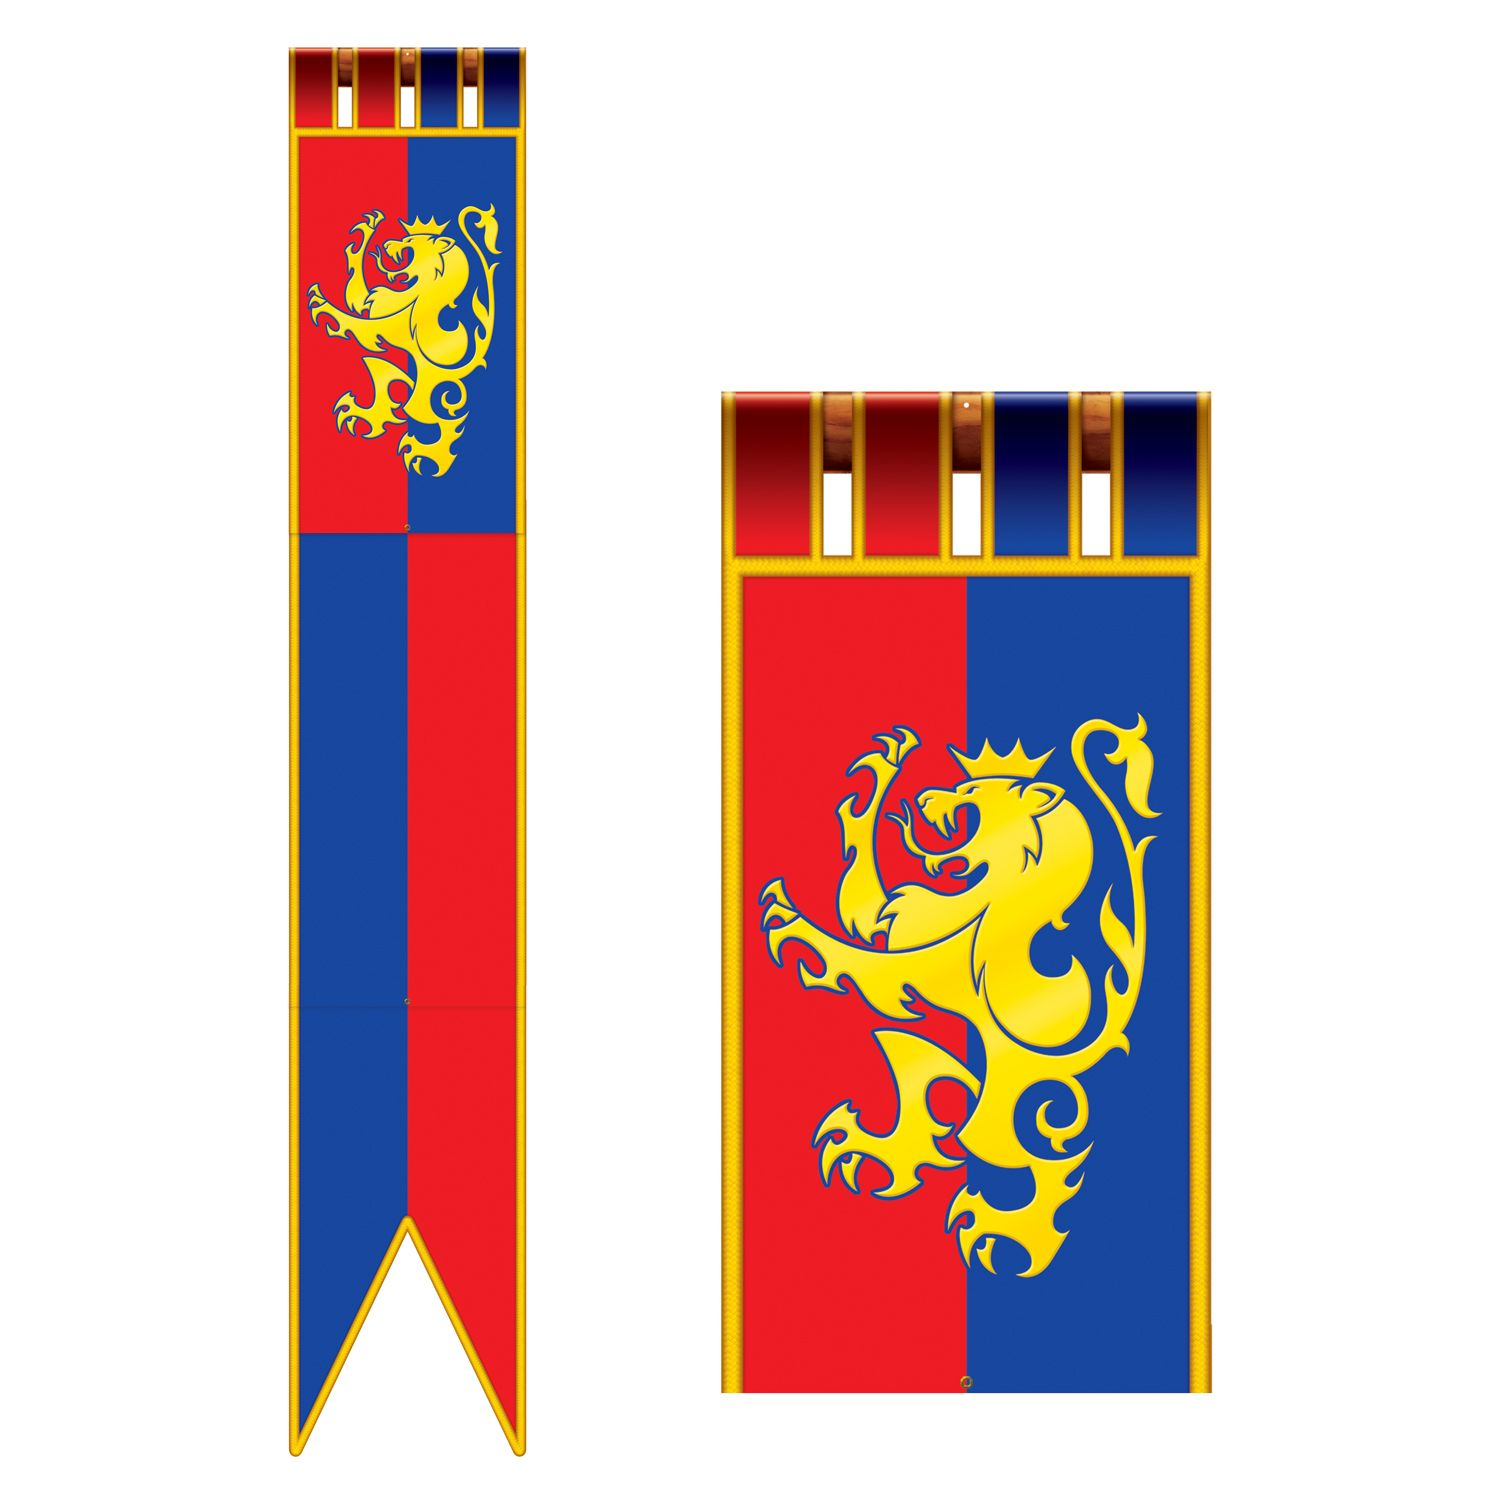 Medieval flags are some of the more enduring images from the Middle Ages. Today, many European nations still fly medieval flags to signify their rich history. The Purpose of Medieval Flags & Banners. From the beginning, flags were used for the purpose of identification.